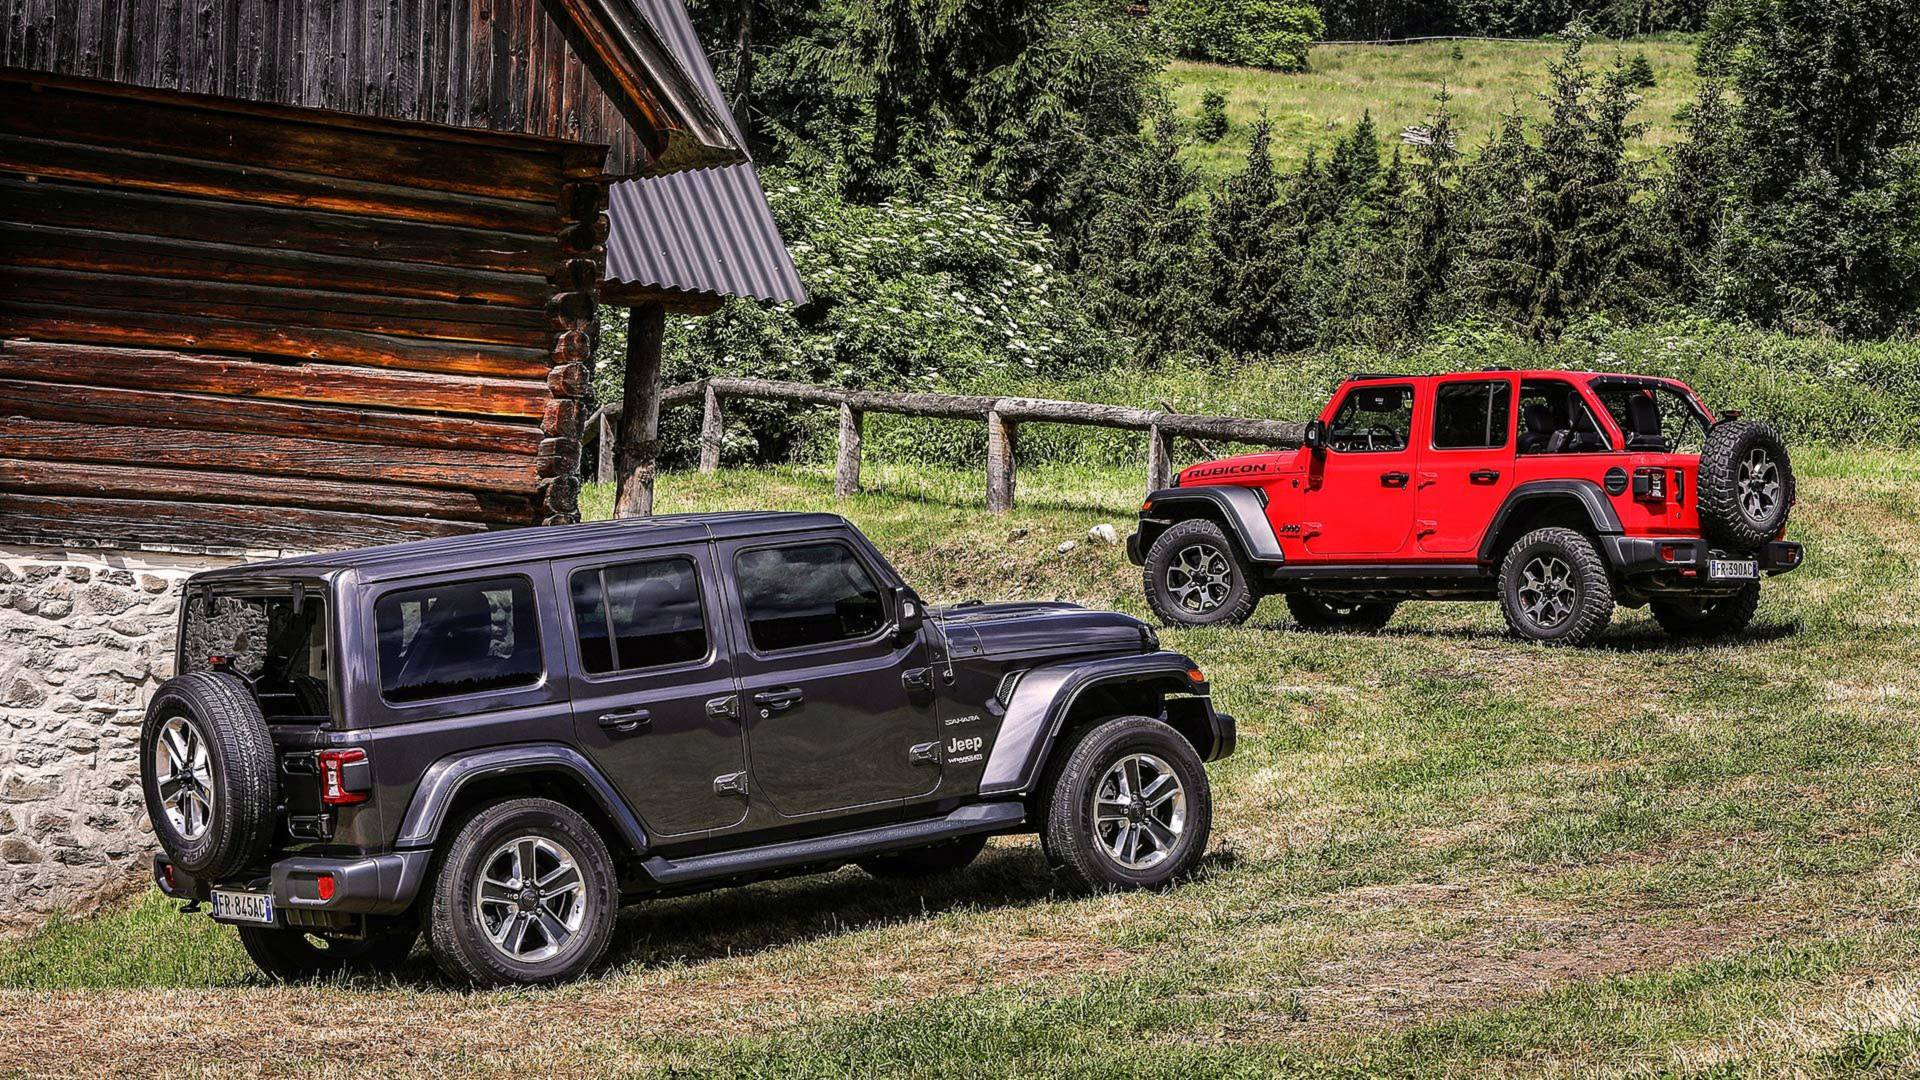 2018 Jeep Wrangler: Redesign, Aluminum Elements, Engines >> Jeep Wrangler Climbs Into Europe With 200 Hp Turbodiesel